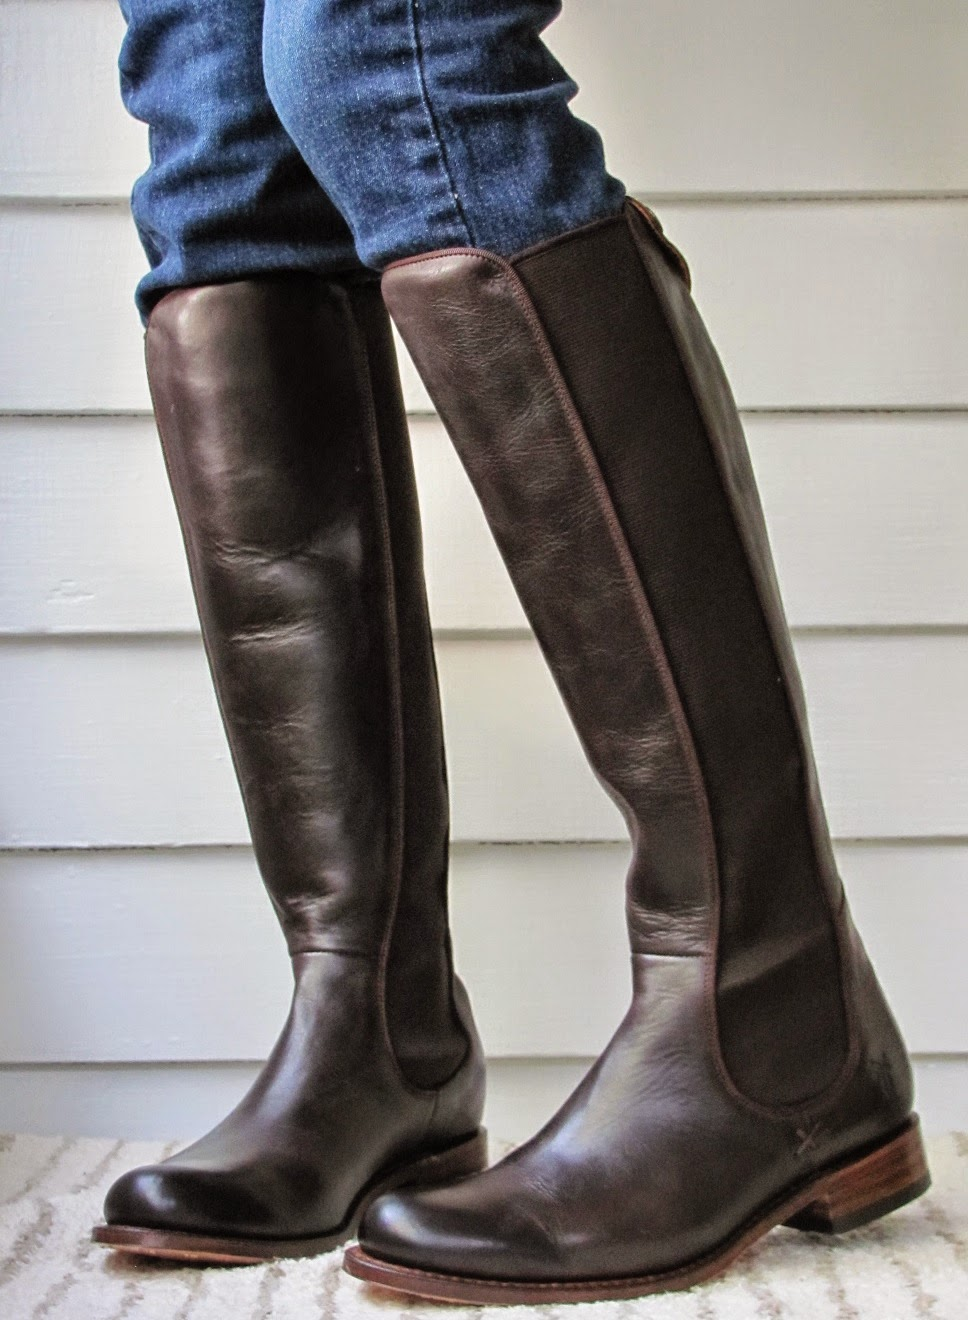 Howdy Slim! Riding Boots for Thin Calves: Frye Riding Chelsea